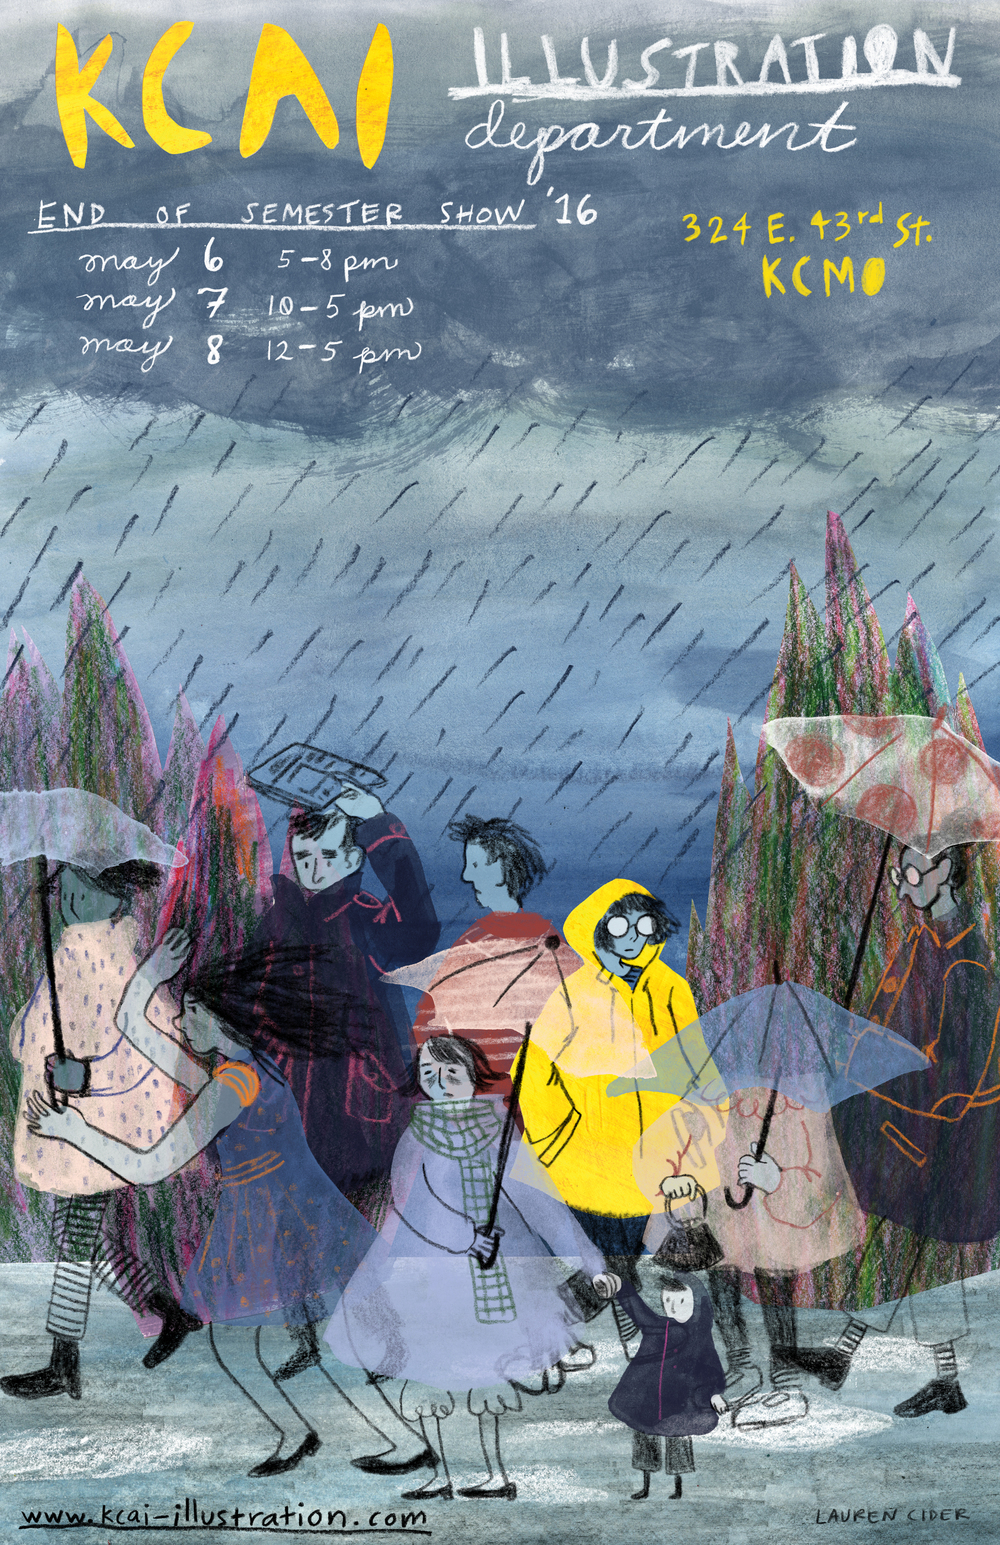 KCAI Illustration 2016 End of Semester Show poster by junior Lauren Sieder